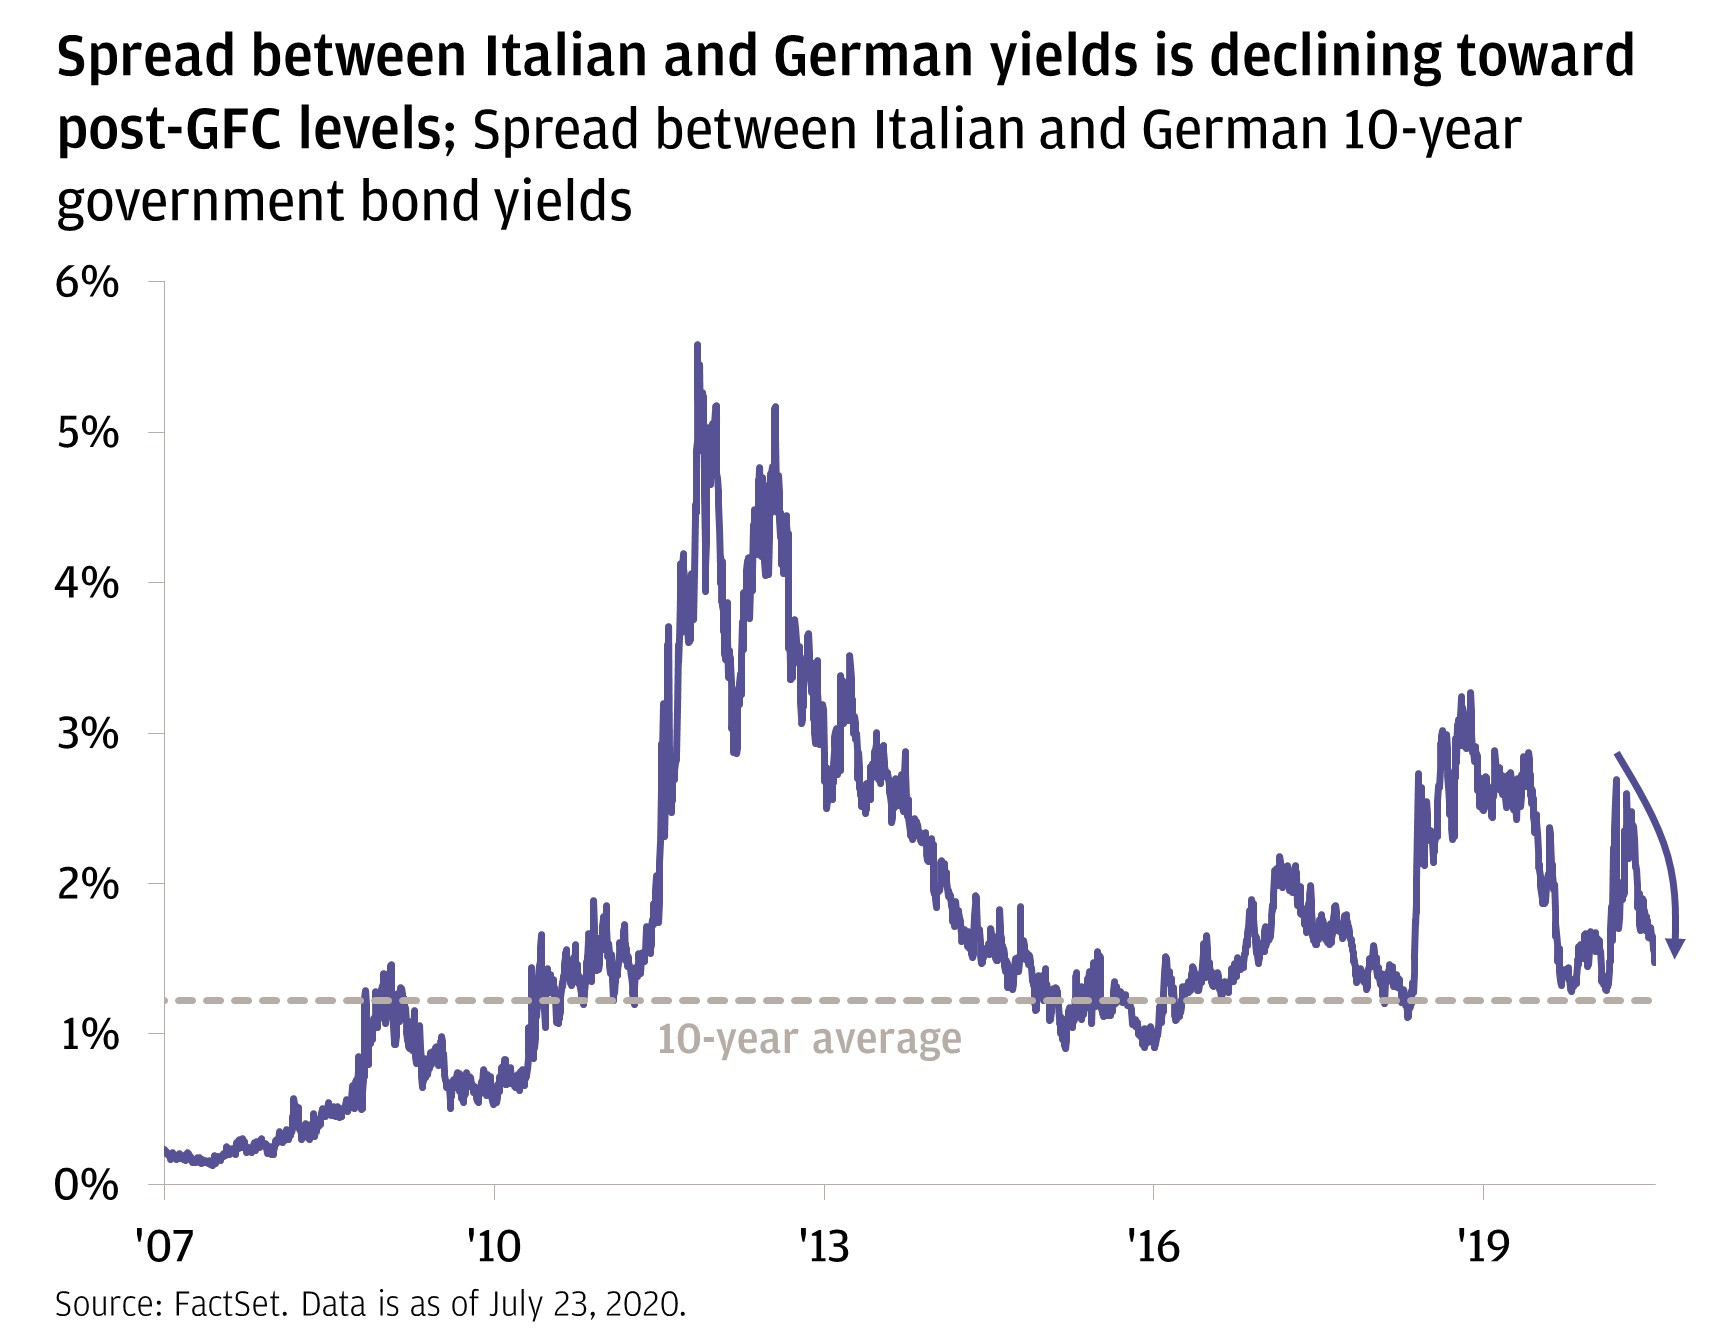 The line chart shows the spread between Italian and German 10-year yields from 2007 through July 22, 2020. It shows that there was a huge spike between 2010 and 2013, and another smaller spike recently in 2019, but now the spreads are declining toward post–Global Financial Crisis levels.